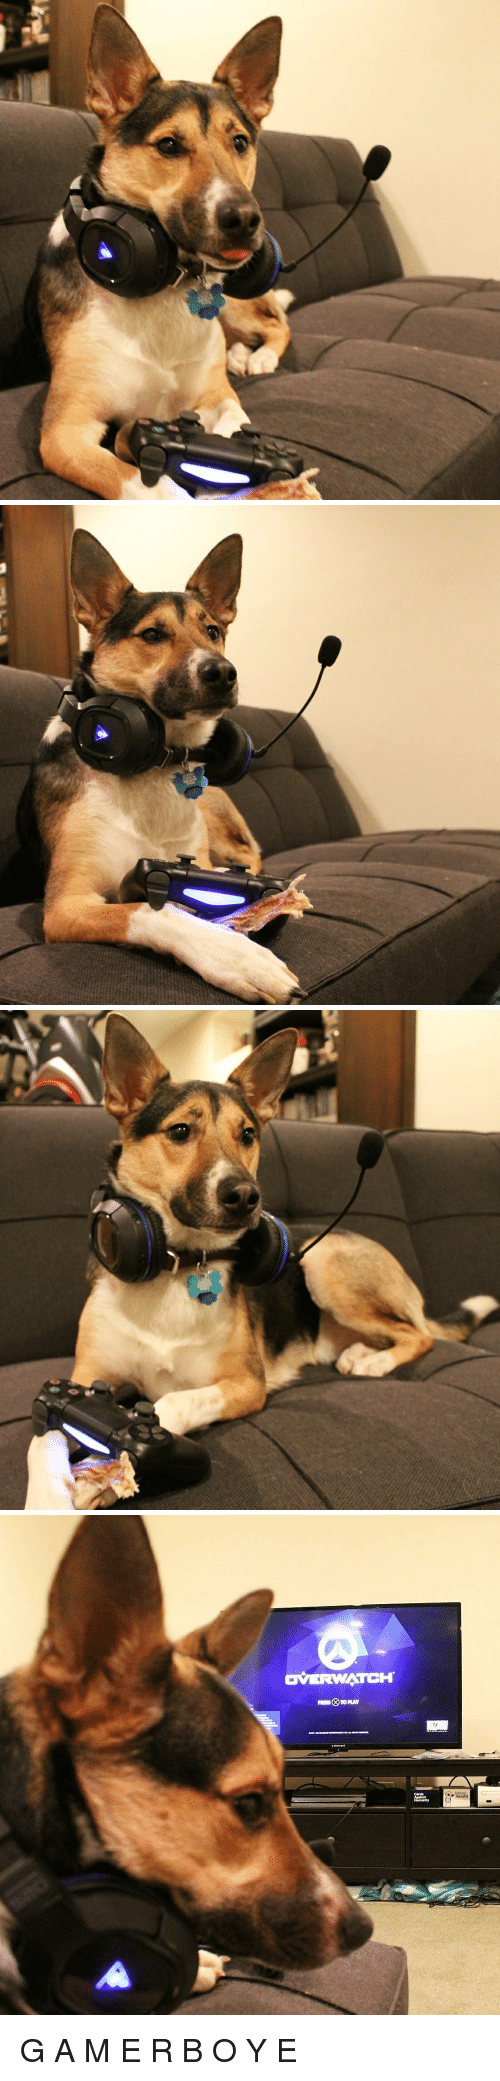 Overwatch, Wanted, and Play: OVERWATCH  Cards G A M E R B O Y E